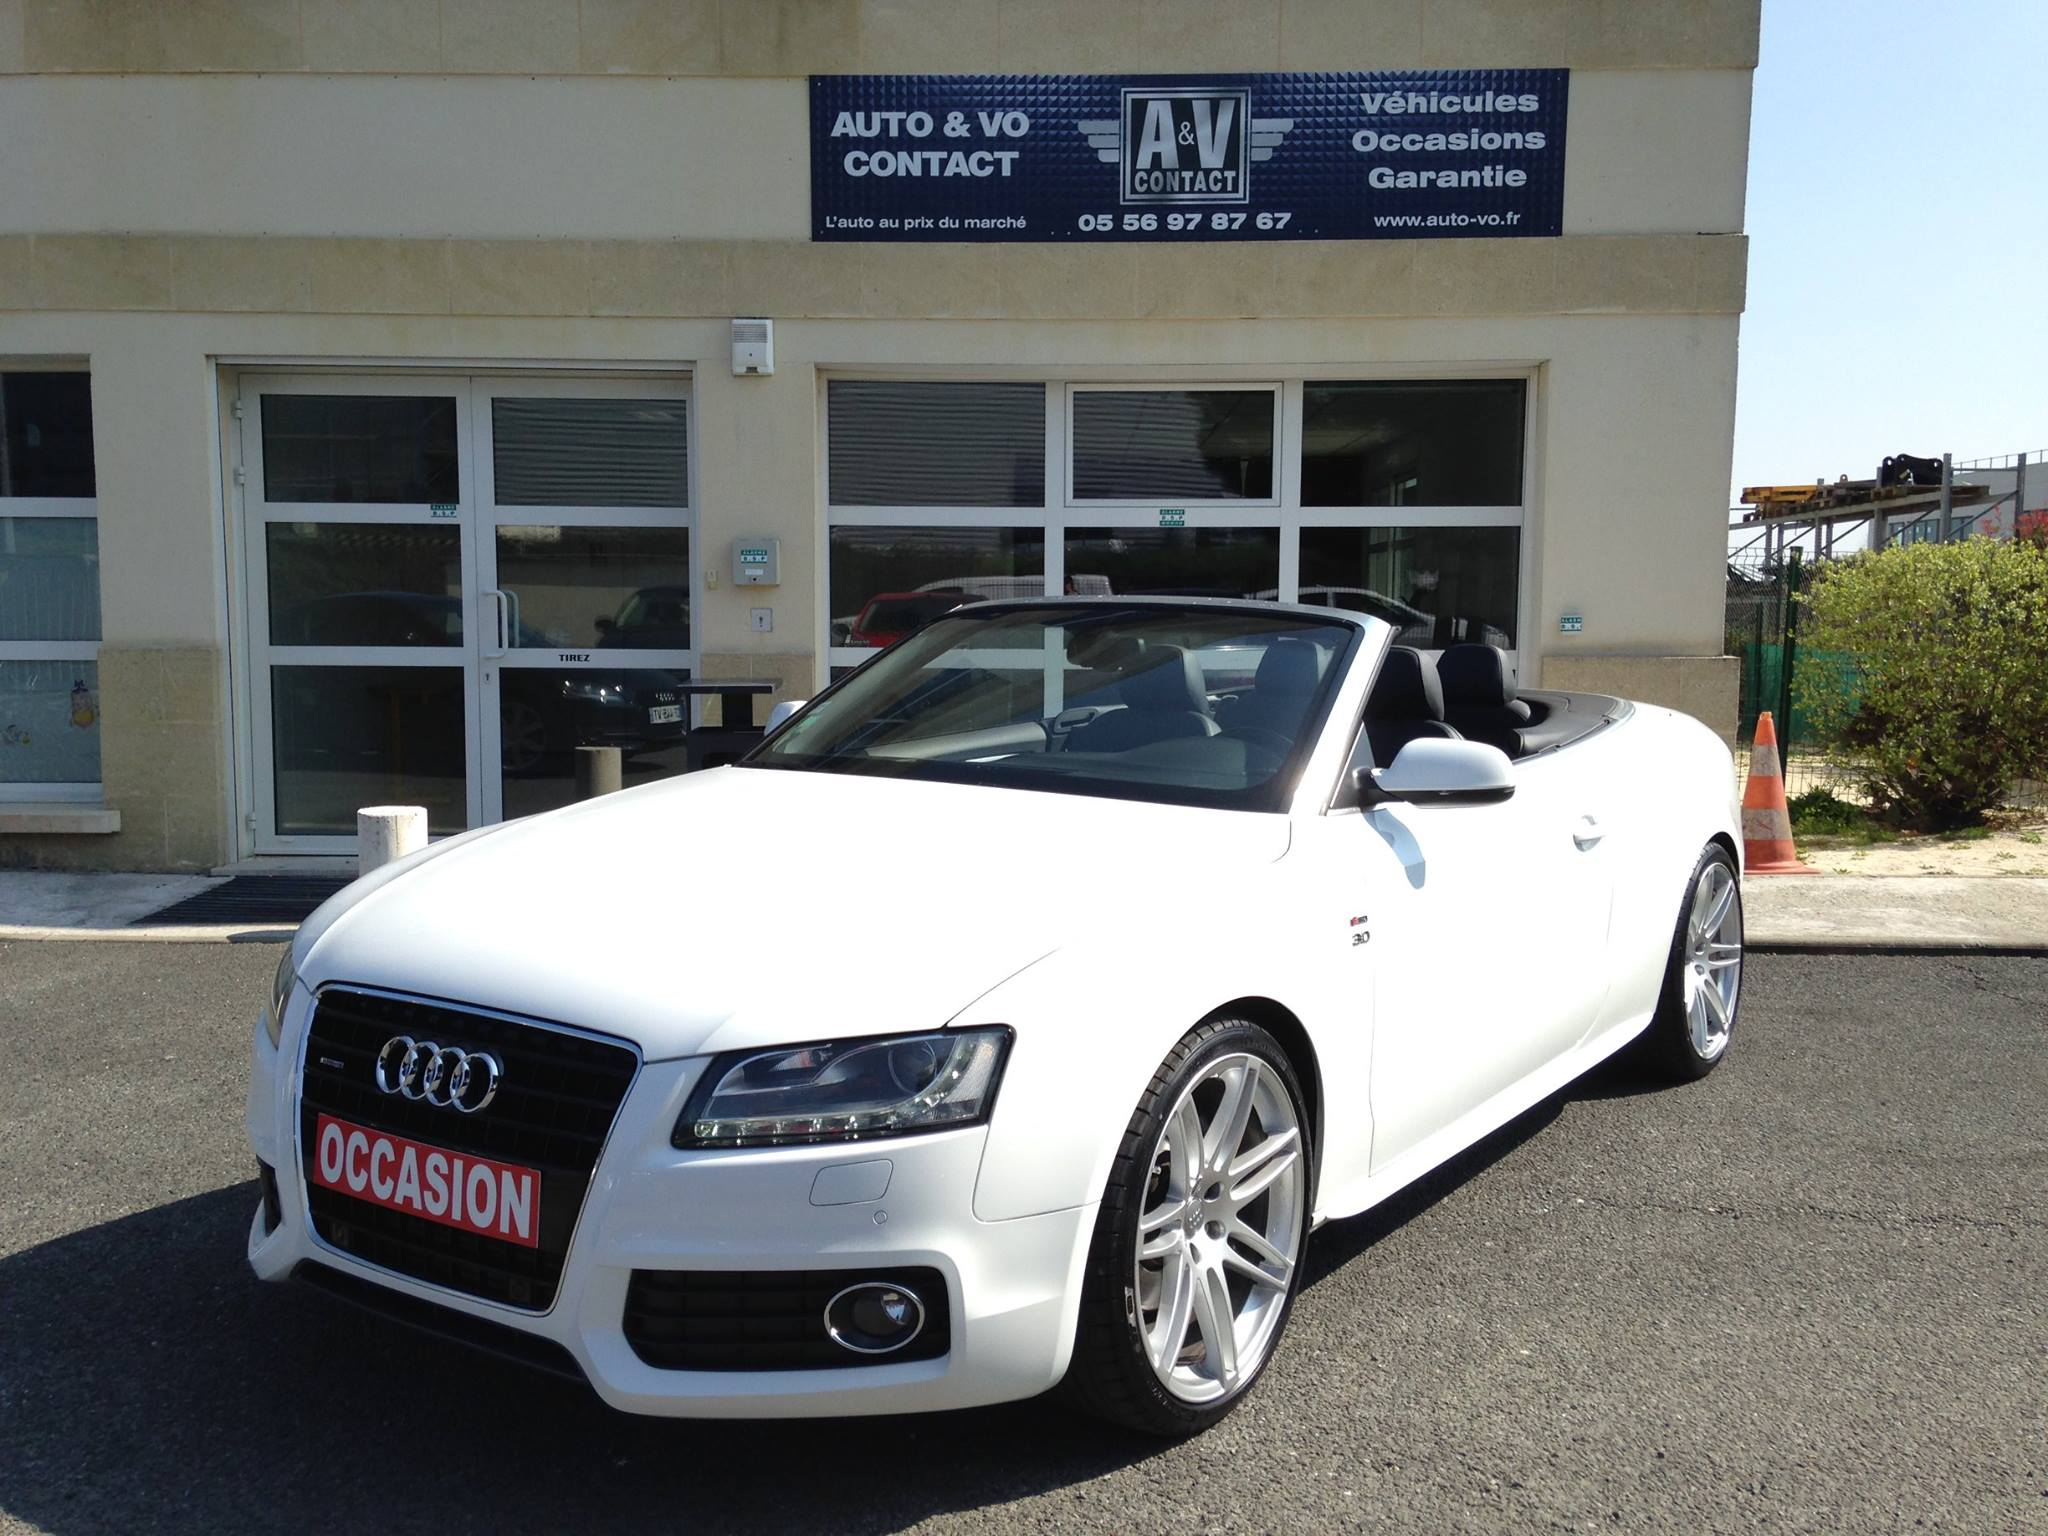 audi a5 cabriolet 3 0 v6 tdi 240 quattro s line s tronic du 77 000 kms vendu. Black Bedroom Furniture Sets. Home Design Ideas